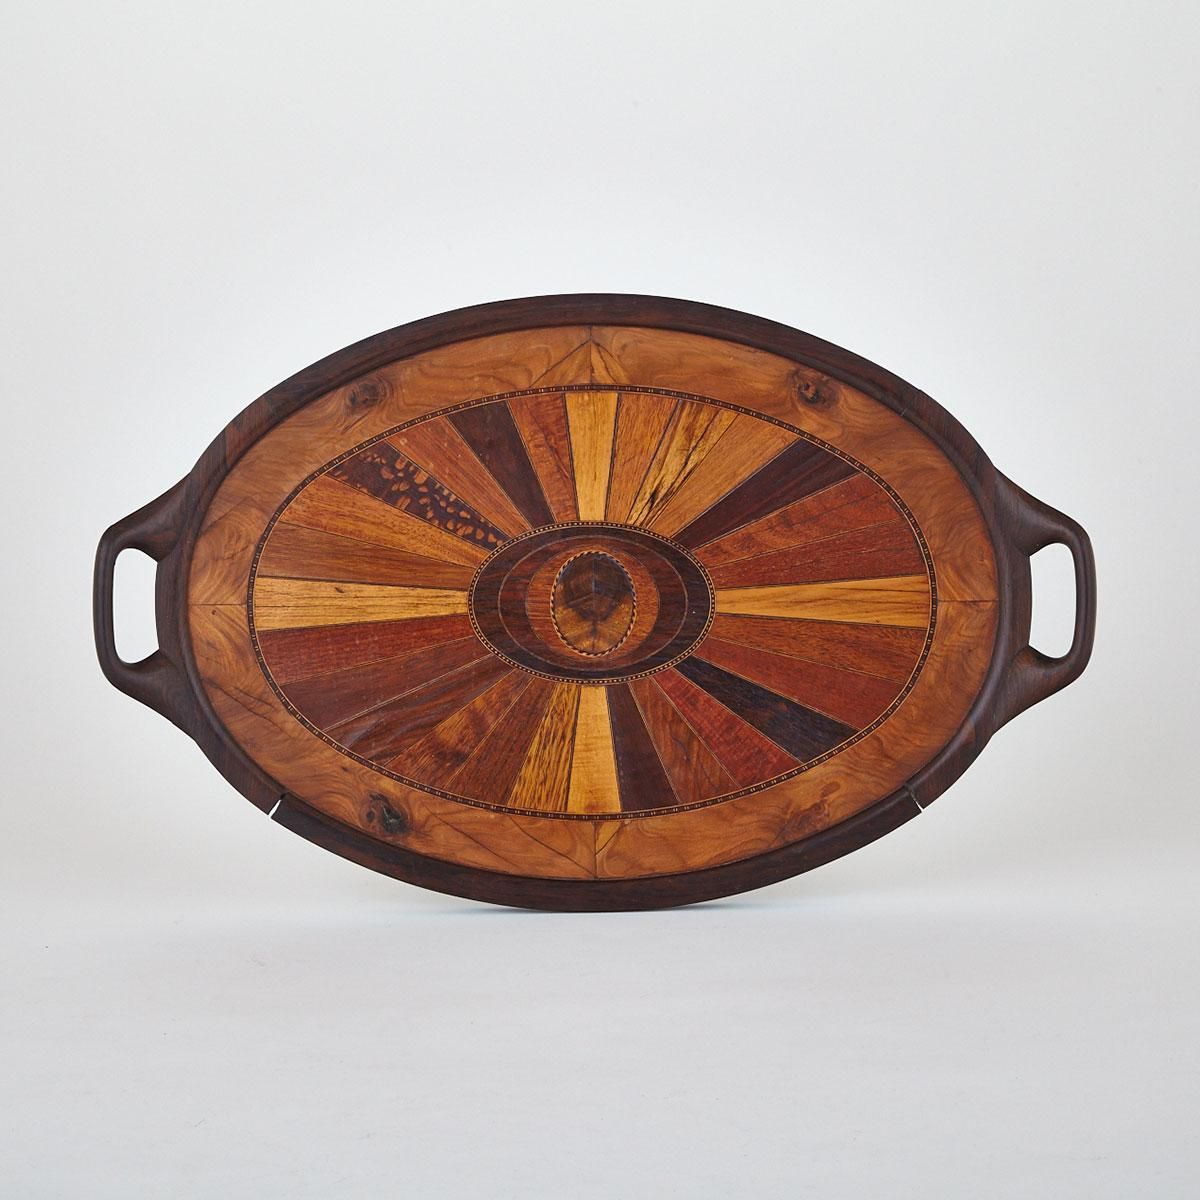 Specimen Wood Parquetry Inlaid Tea Tray, early-mid 20th century